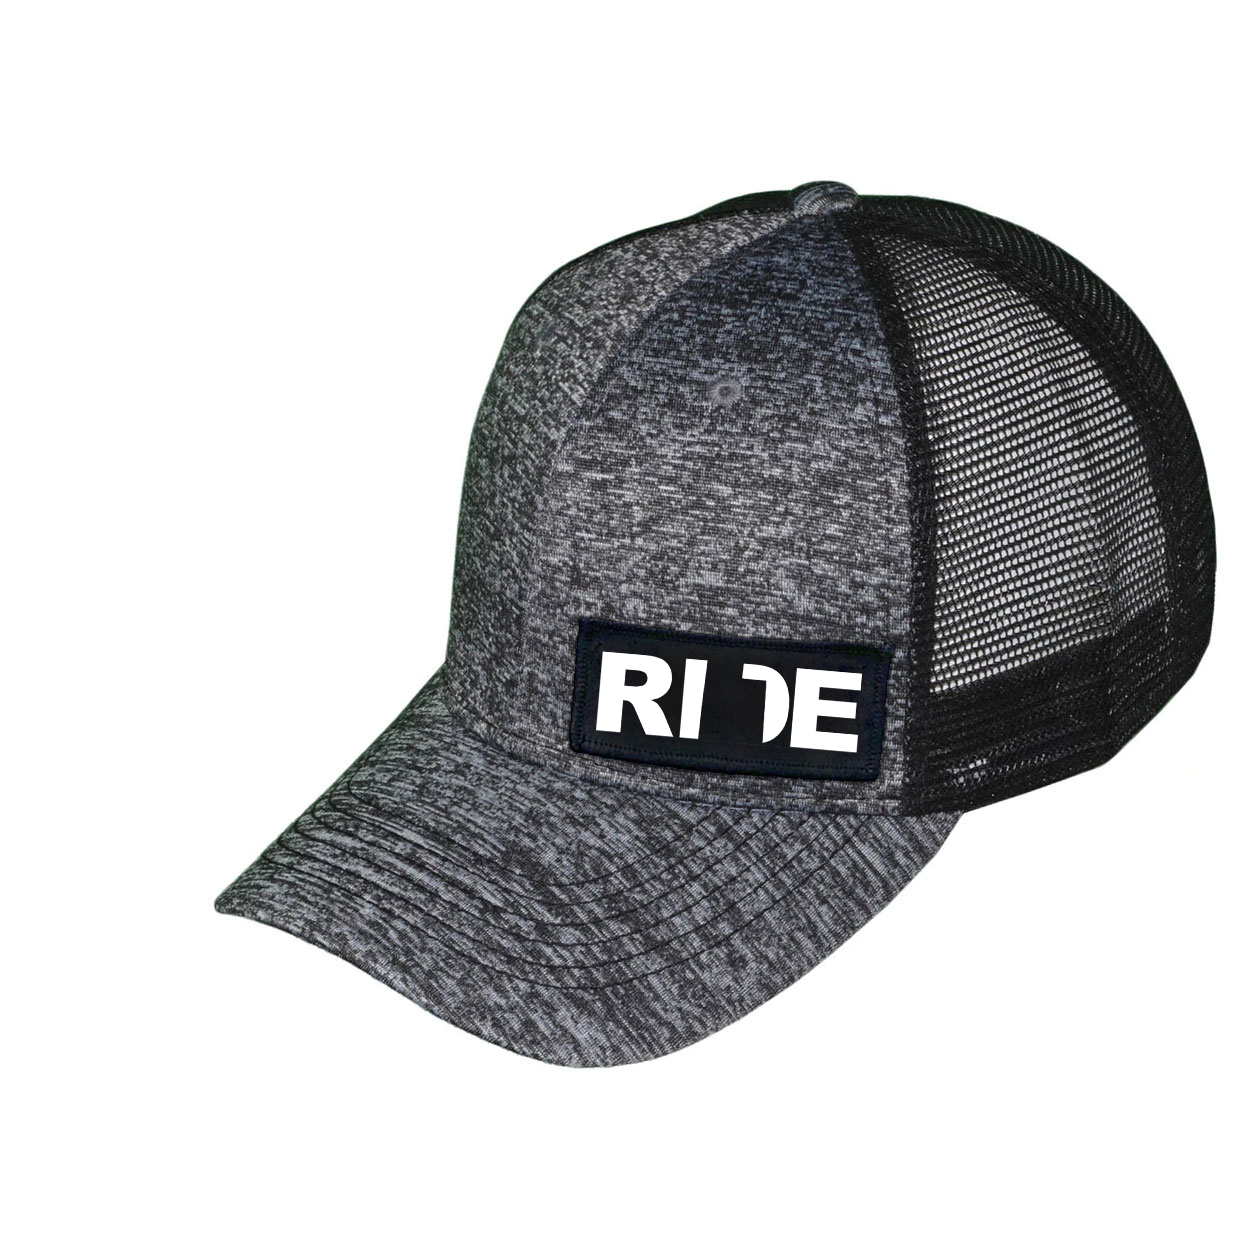 Ride Utah Night Out Woven Patch Melange Snapback Trucker Hat Gray/Black (White Logo)